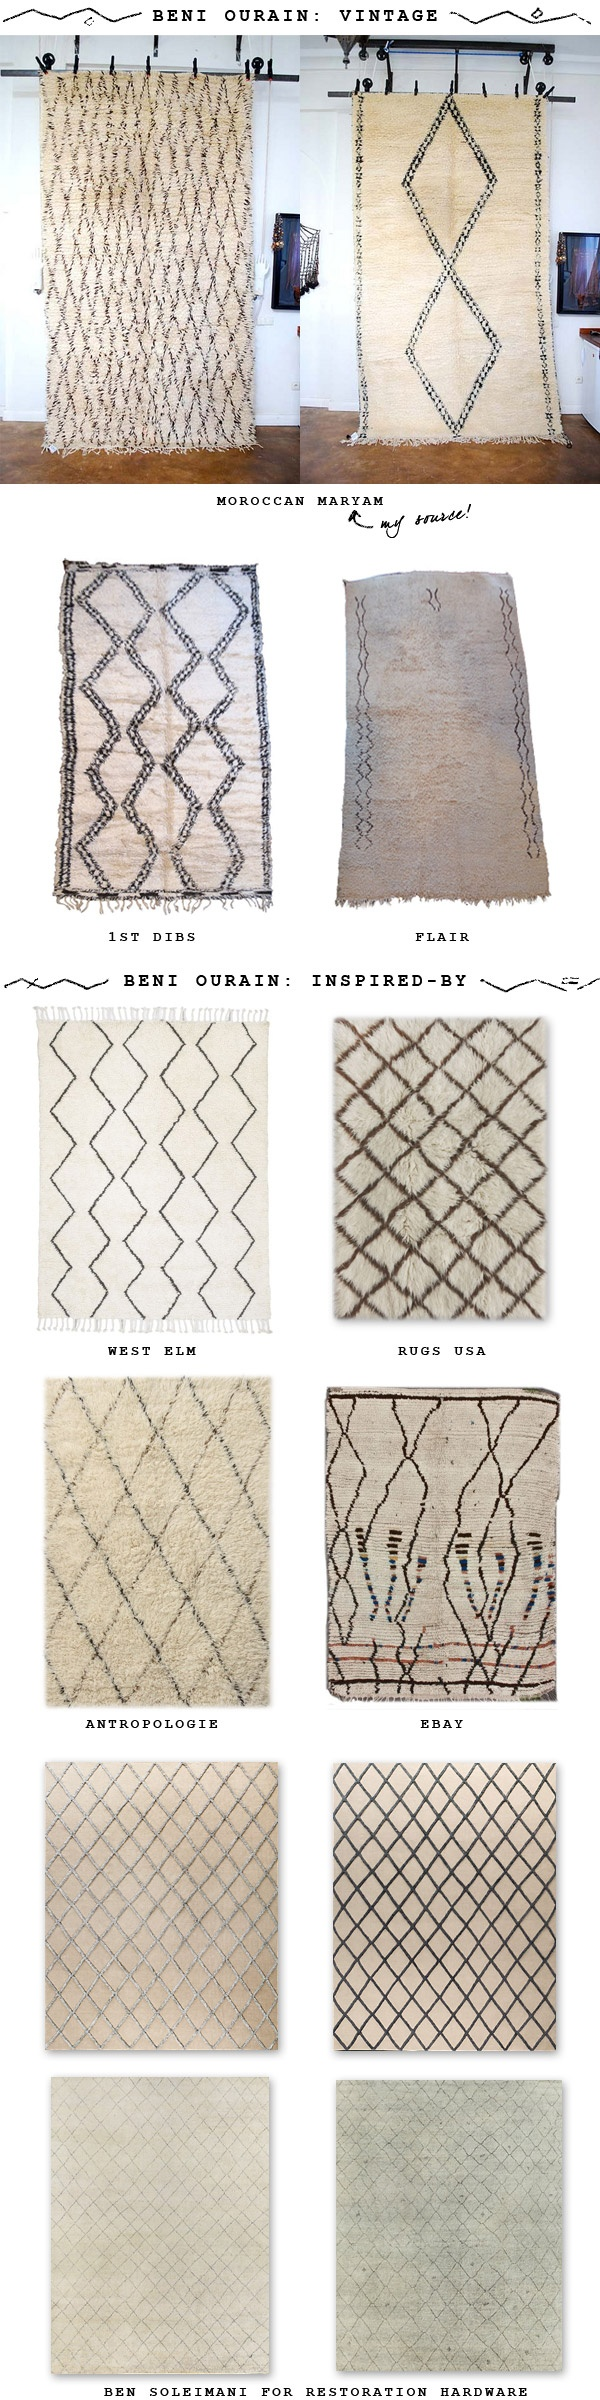 Ben Ourain inspired rugs and sources